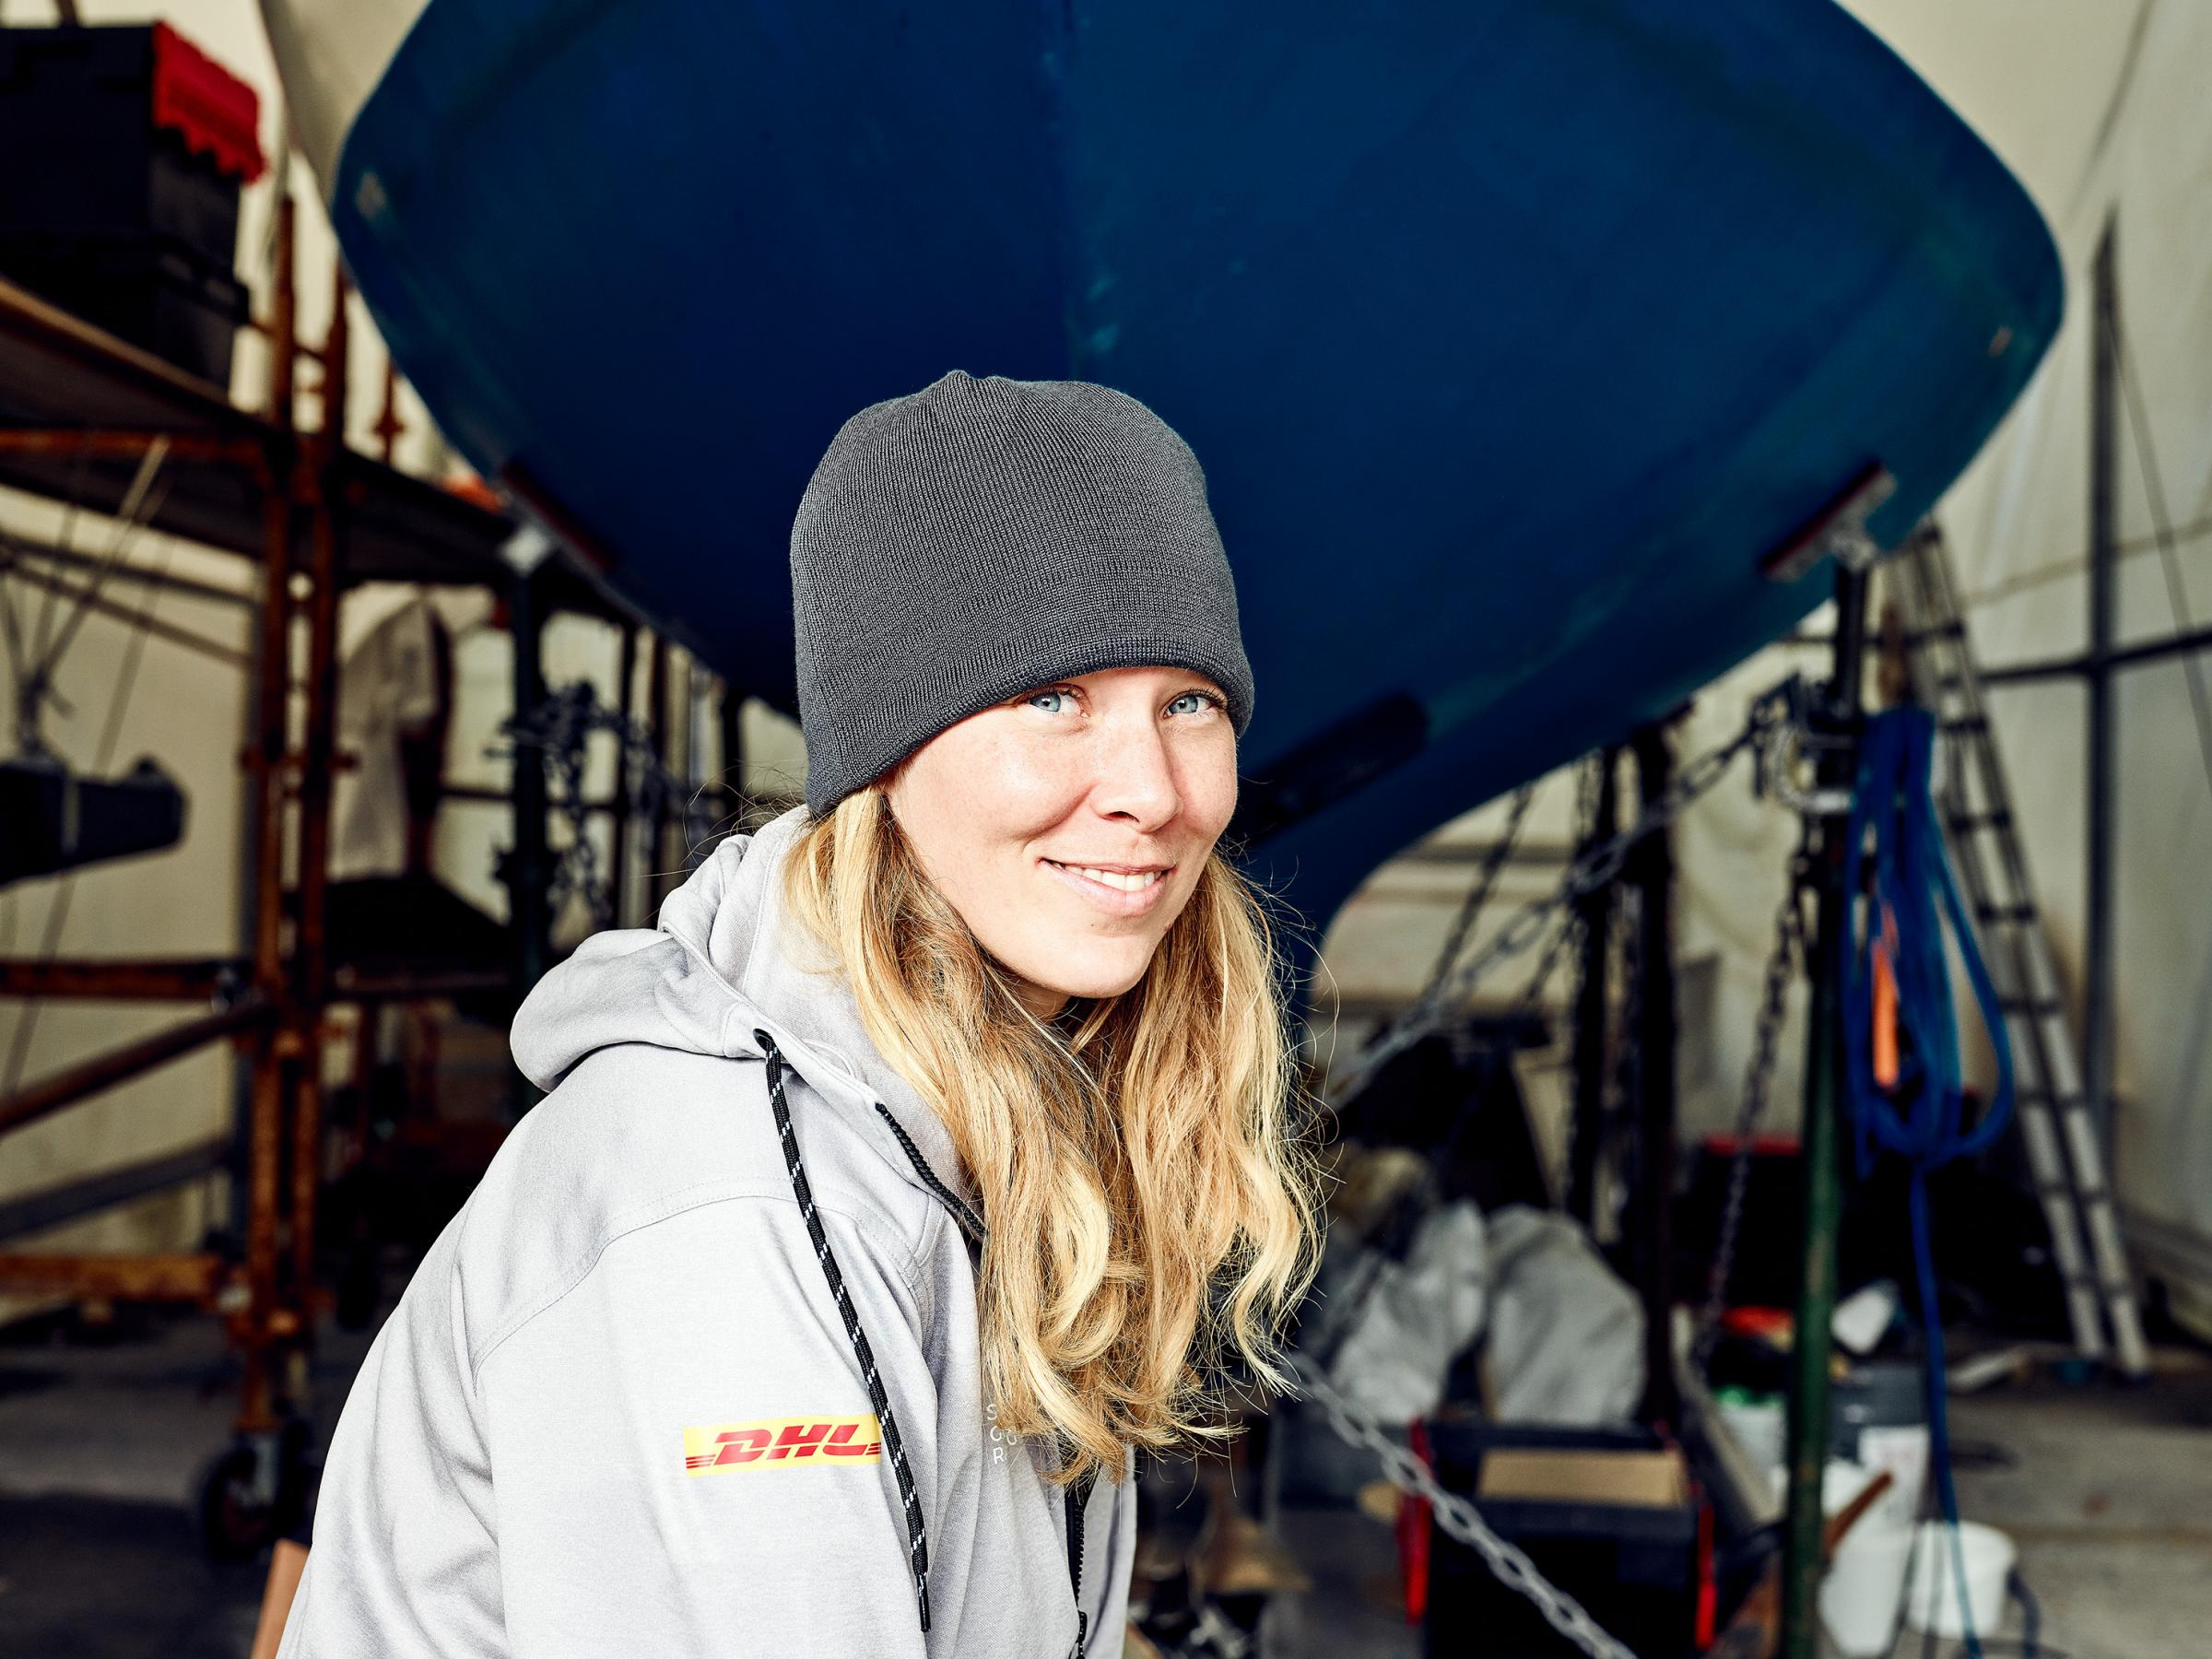 British yachtswoman Susie Goodall, the sole female entrant in the 2018 Golden Globe Race. Photo: Maverick Sport/GGR/PPL